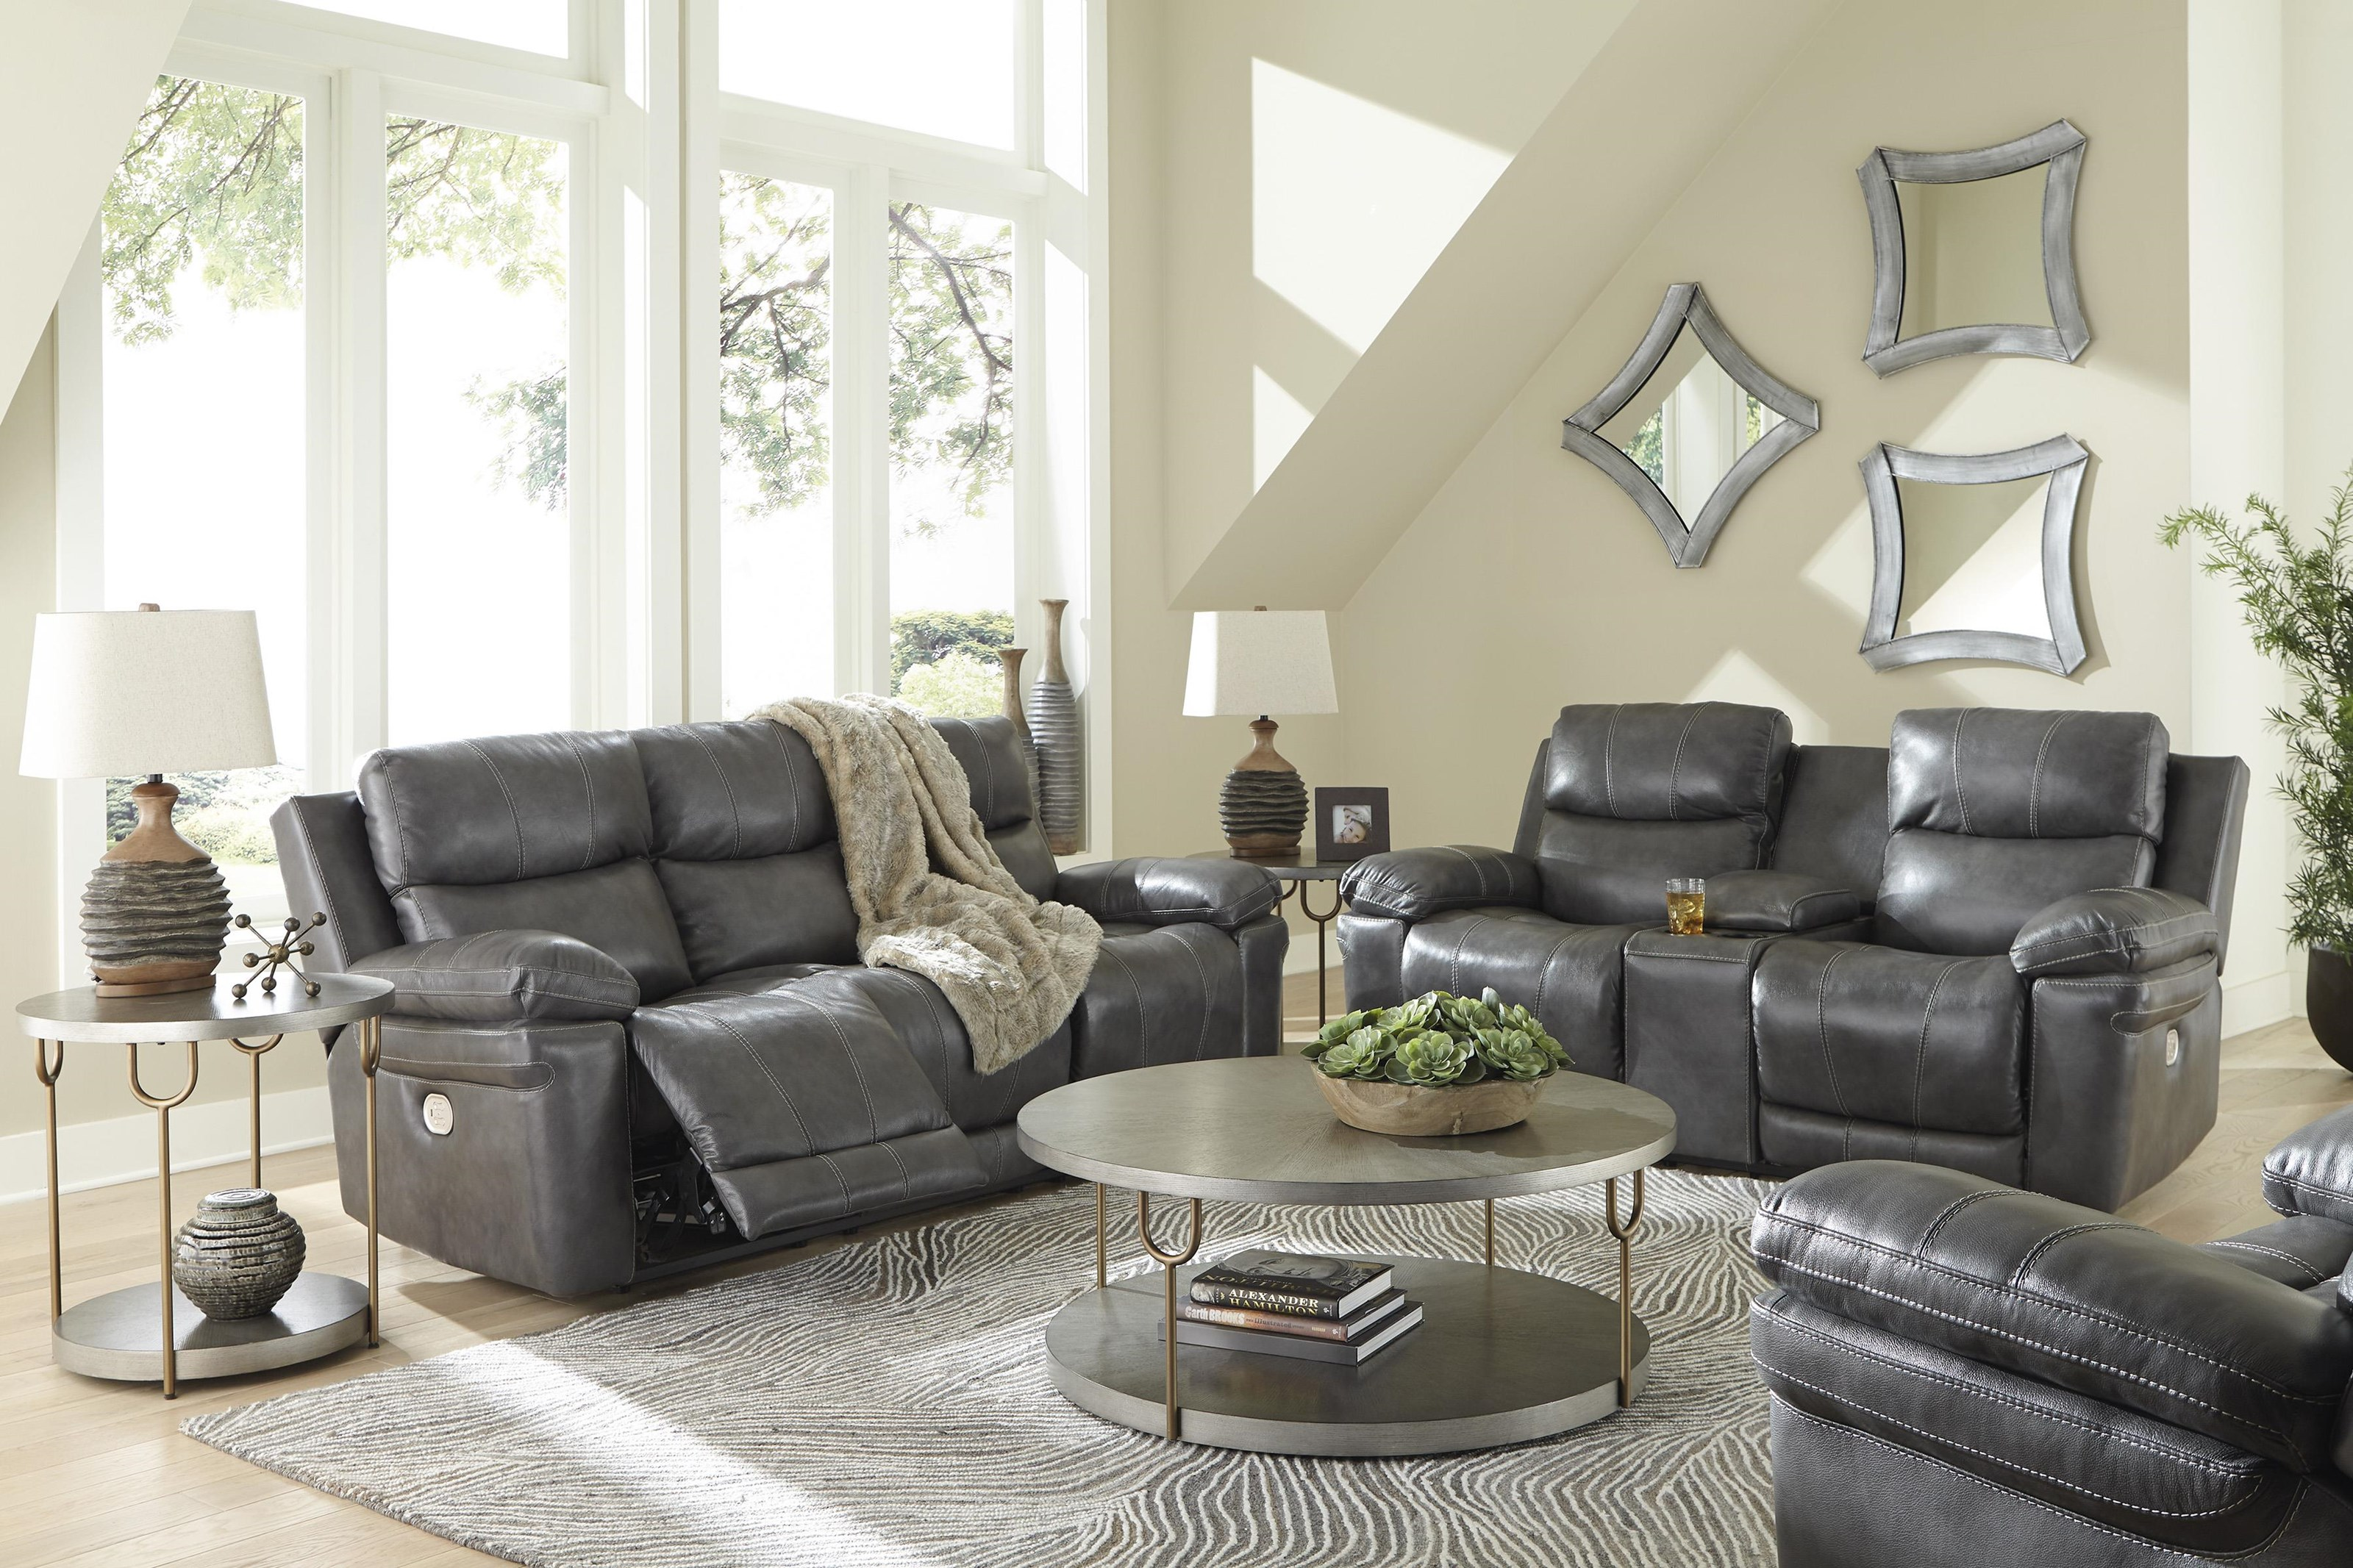 Edmar 2 Piece Power Reclining Living Room Set by Signature Design by Ashley at Sam Levitz Furniture